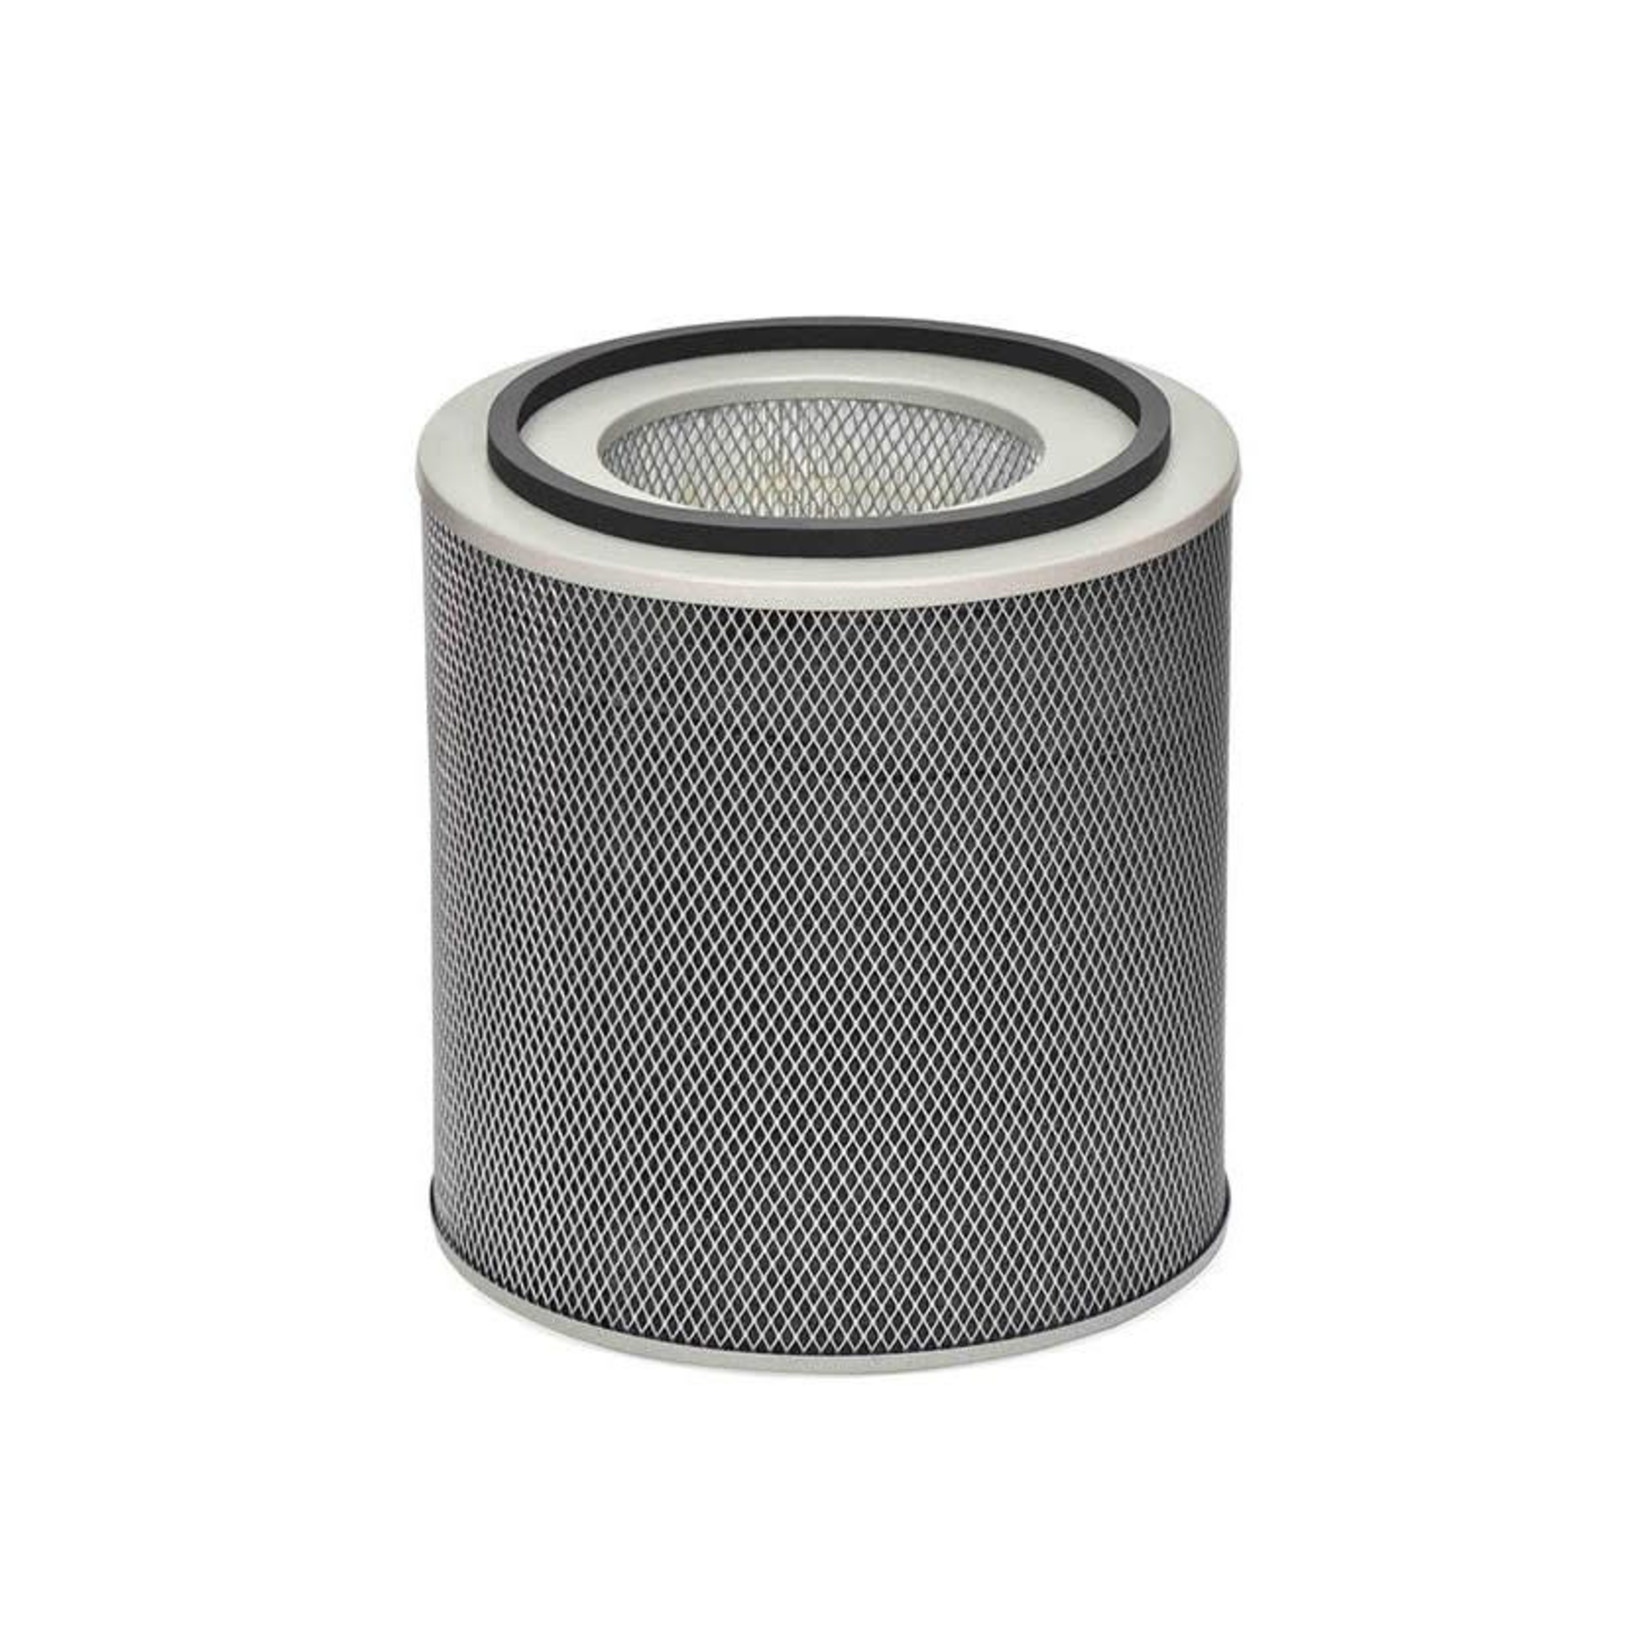 AUSTIN AIR HEALTHMATE HM400 REPLACEMENT FILTER